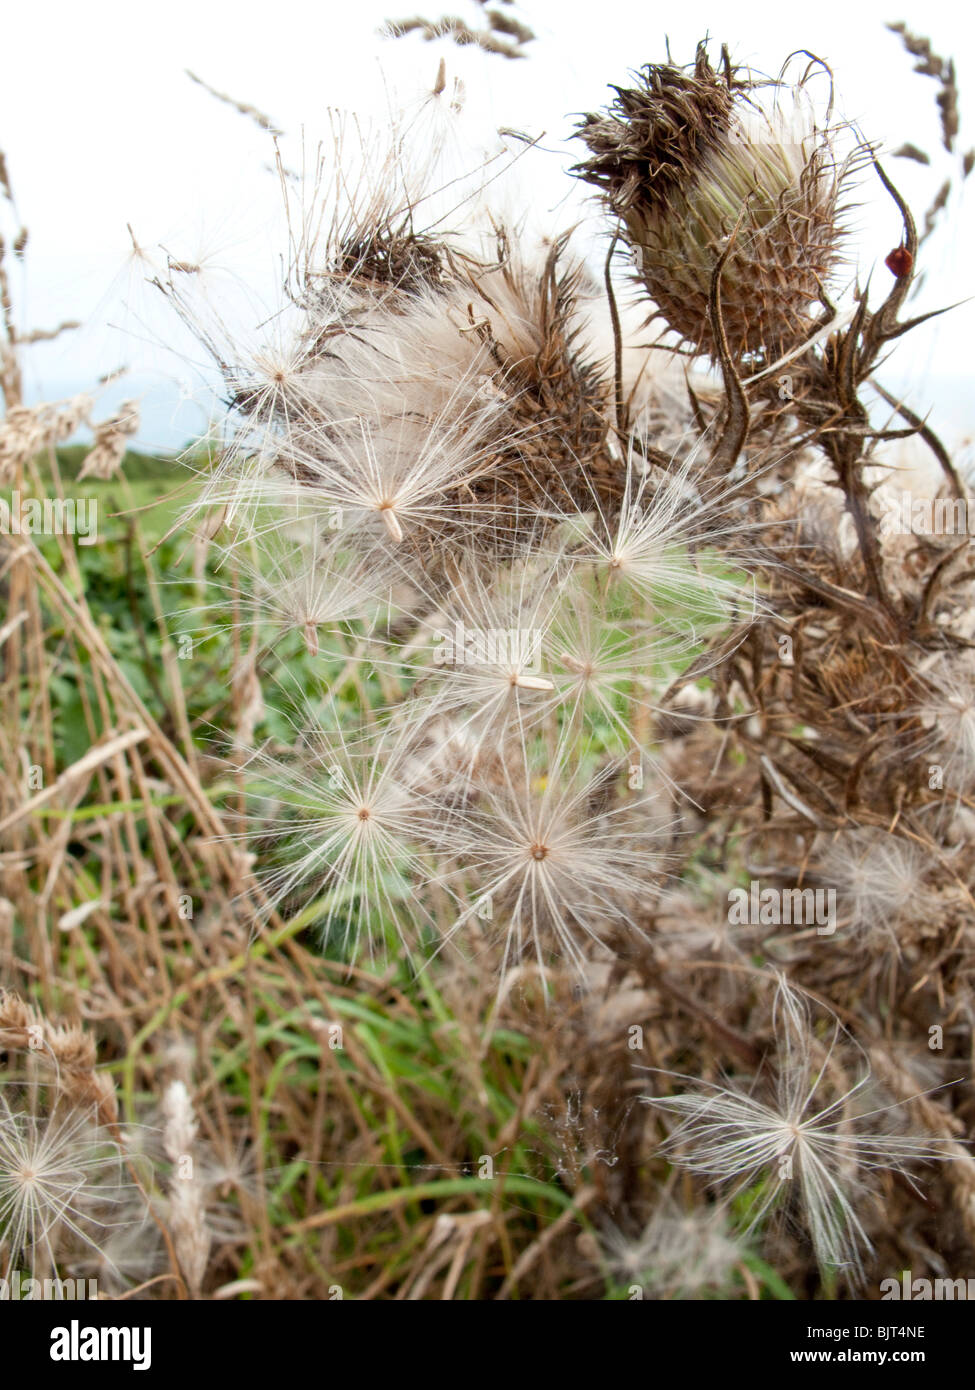 Thistle seedheads in autumn - Stock Image